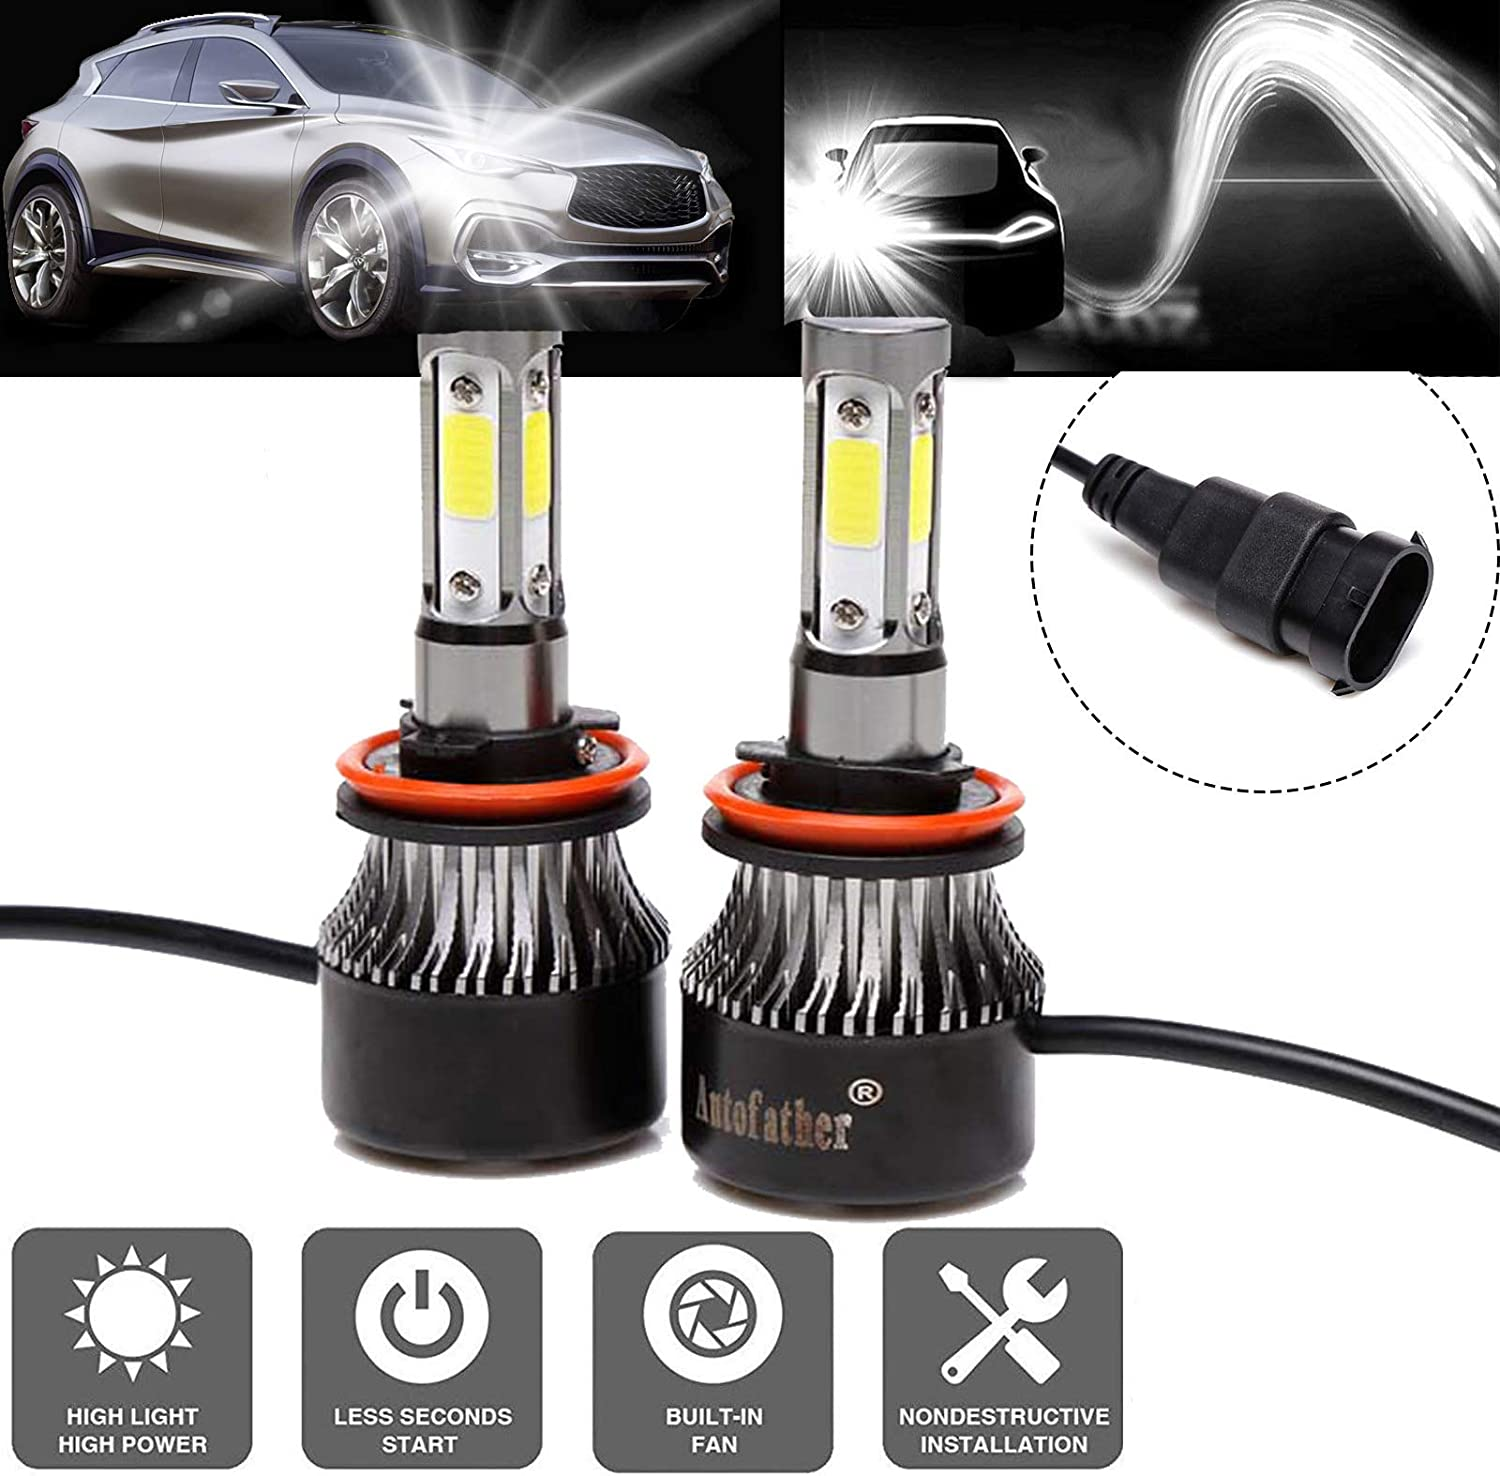 COLIGHT LED Headlight Bulbs H11//H8//H9 Conversion Replacements Yellow Amber 3000K White 6000K Dual Color Temperature 72W 12000lumens Hi//Lo Beam DRL Waterproof ZES Chips Fog Lights H11-F2D-SS